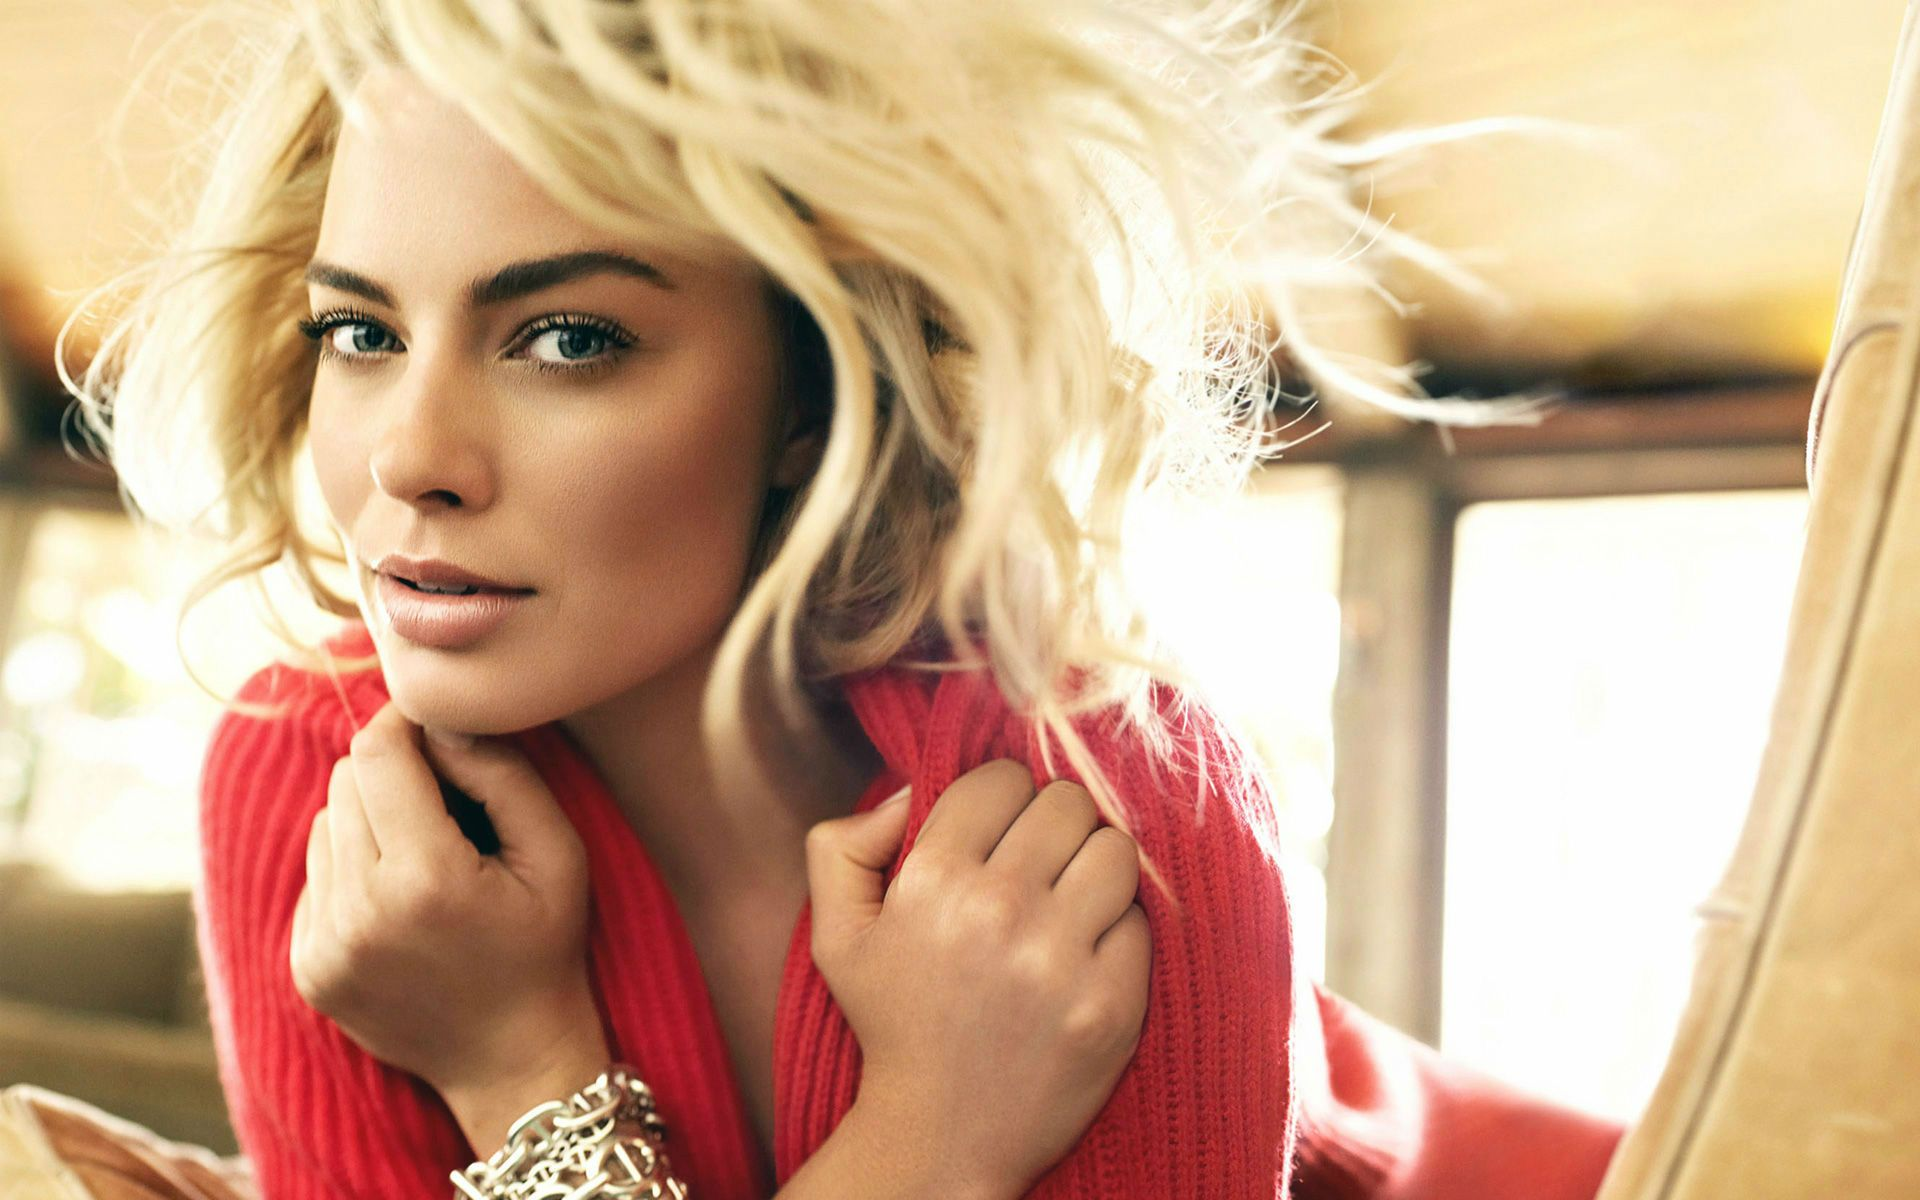 Agree, remarkable margot robbie hot